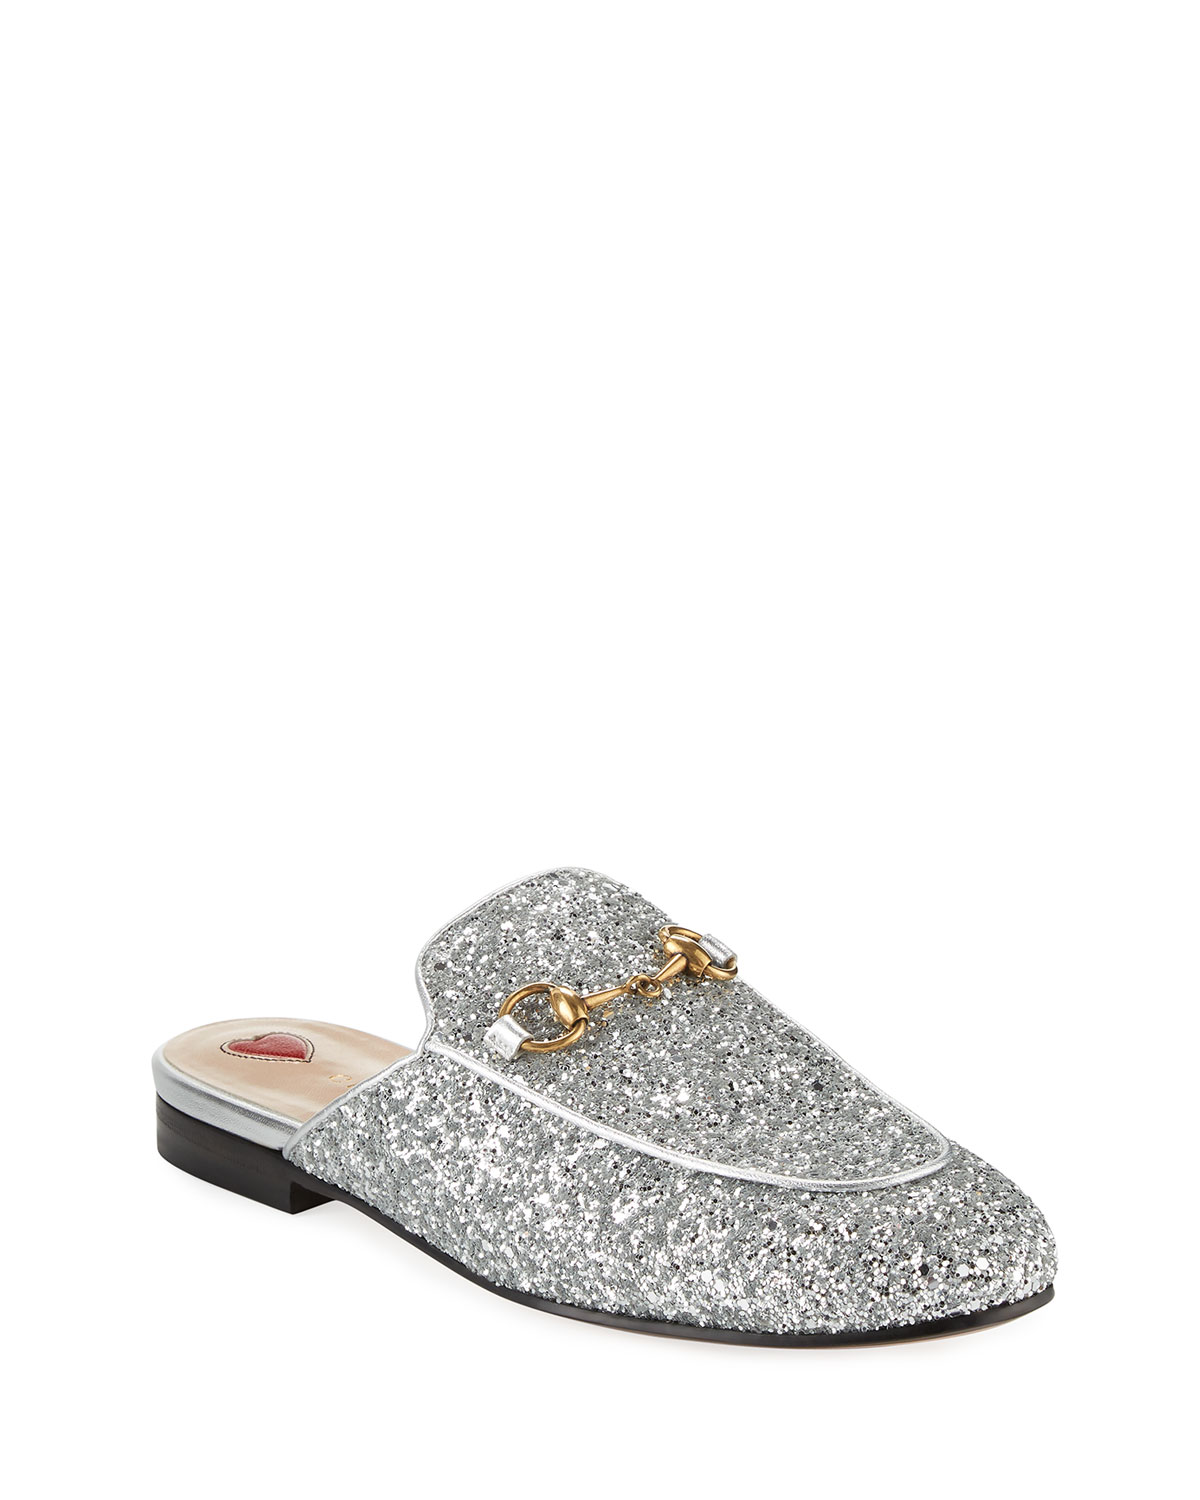 2ee691552f4f Gucci 10mm Princetown Glitter Mule | Neiman Marcus